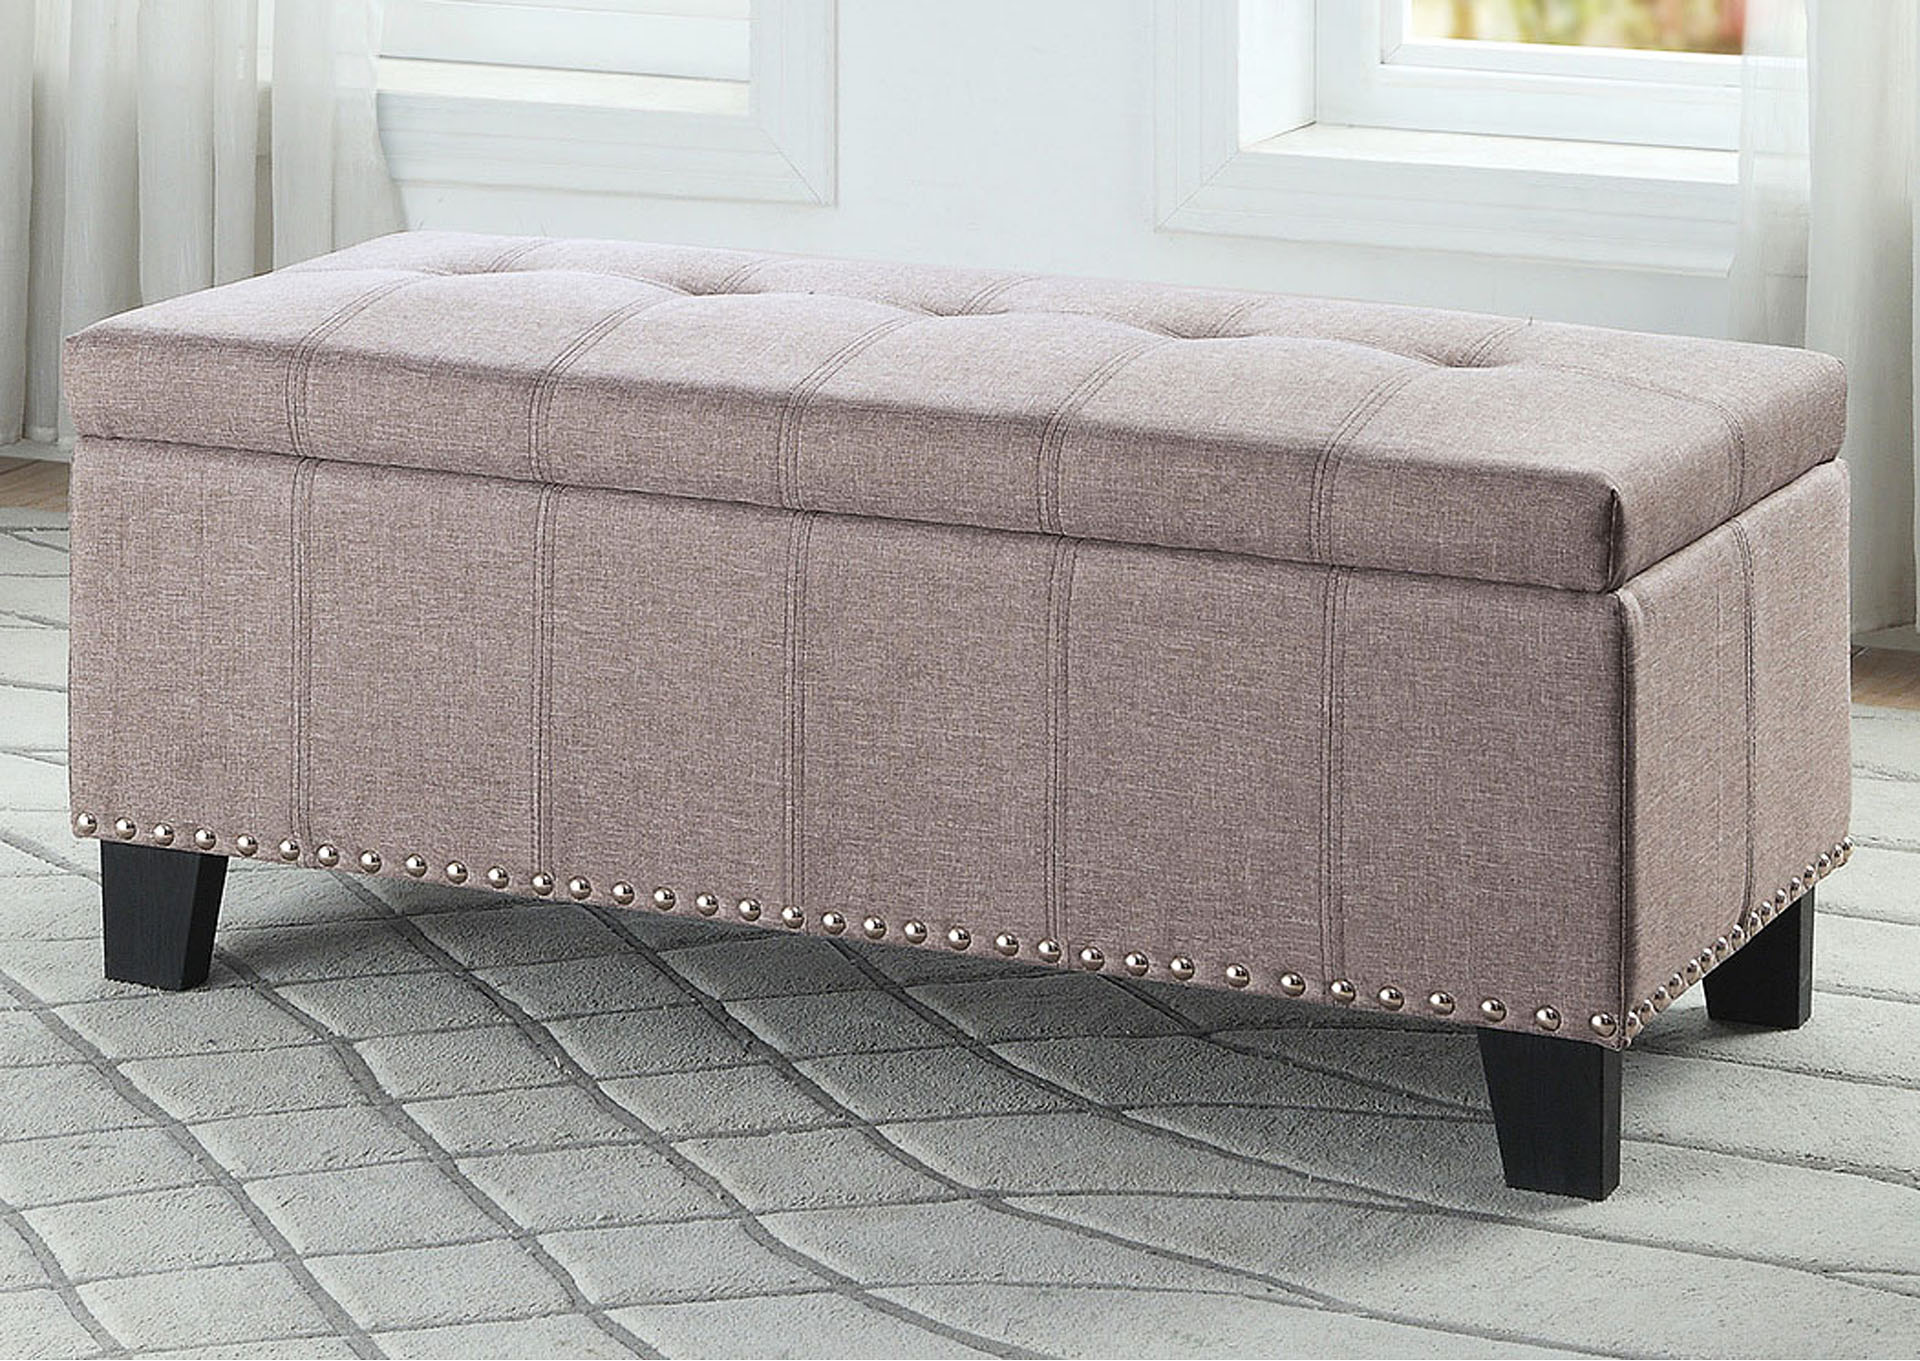 Lift-Top Storage Bench, Gray Fabric,Homelegance